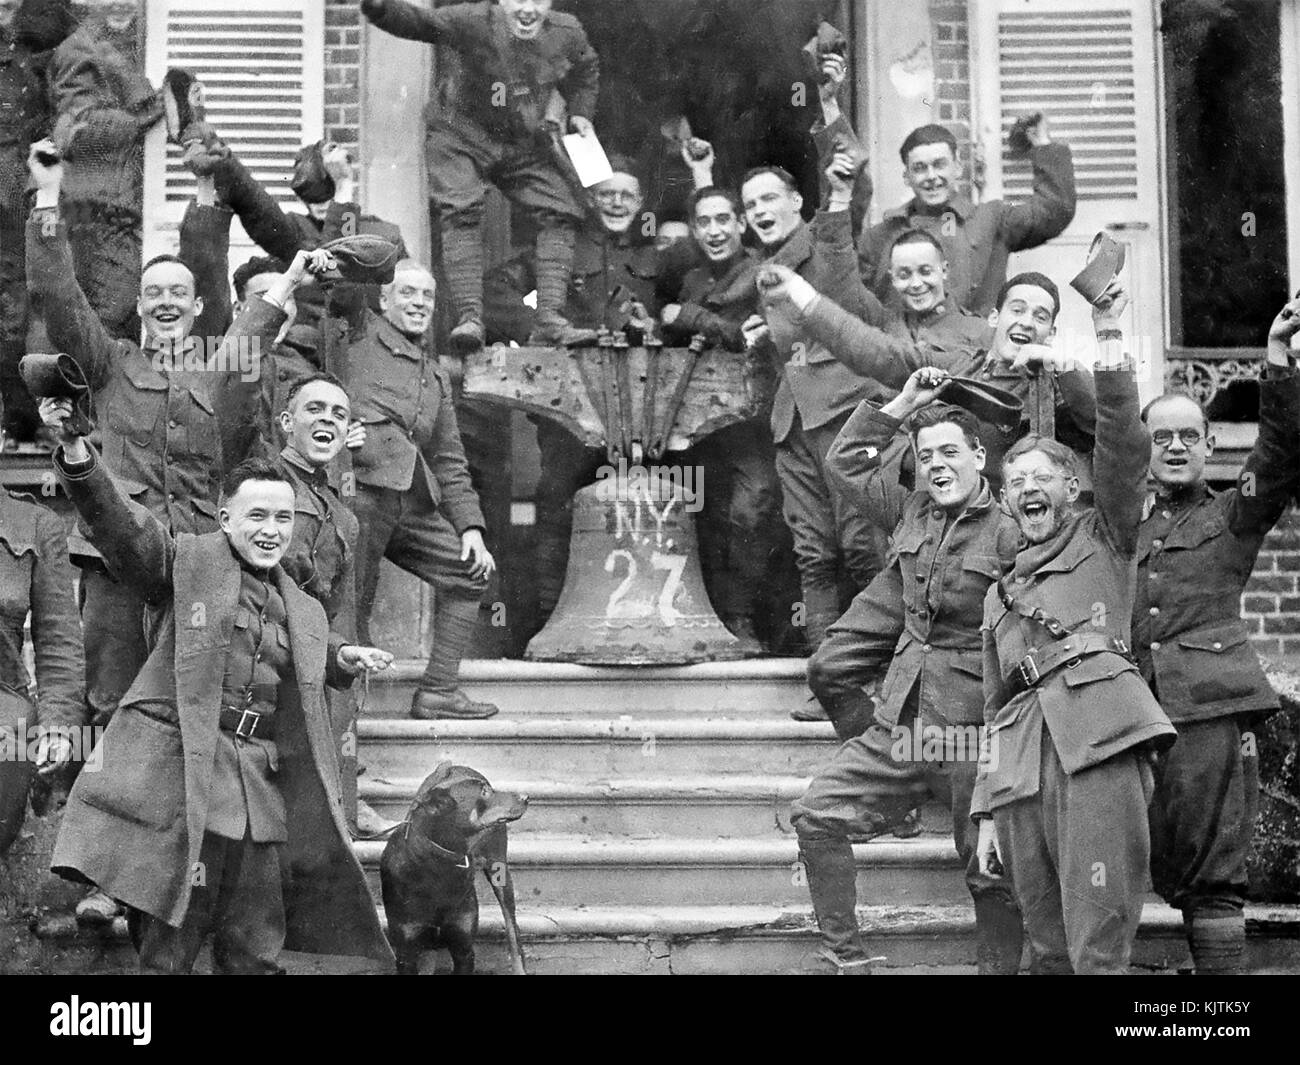 FIRST WORLD WAR ARMISTICE November 1918. American troops in France  celebrate the signing.